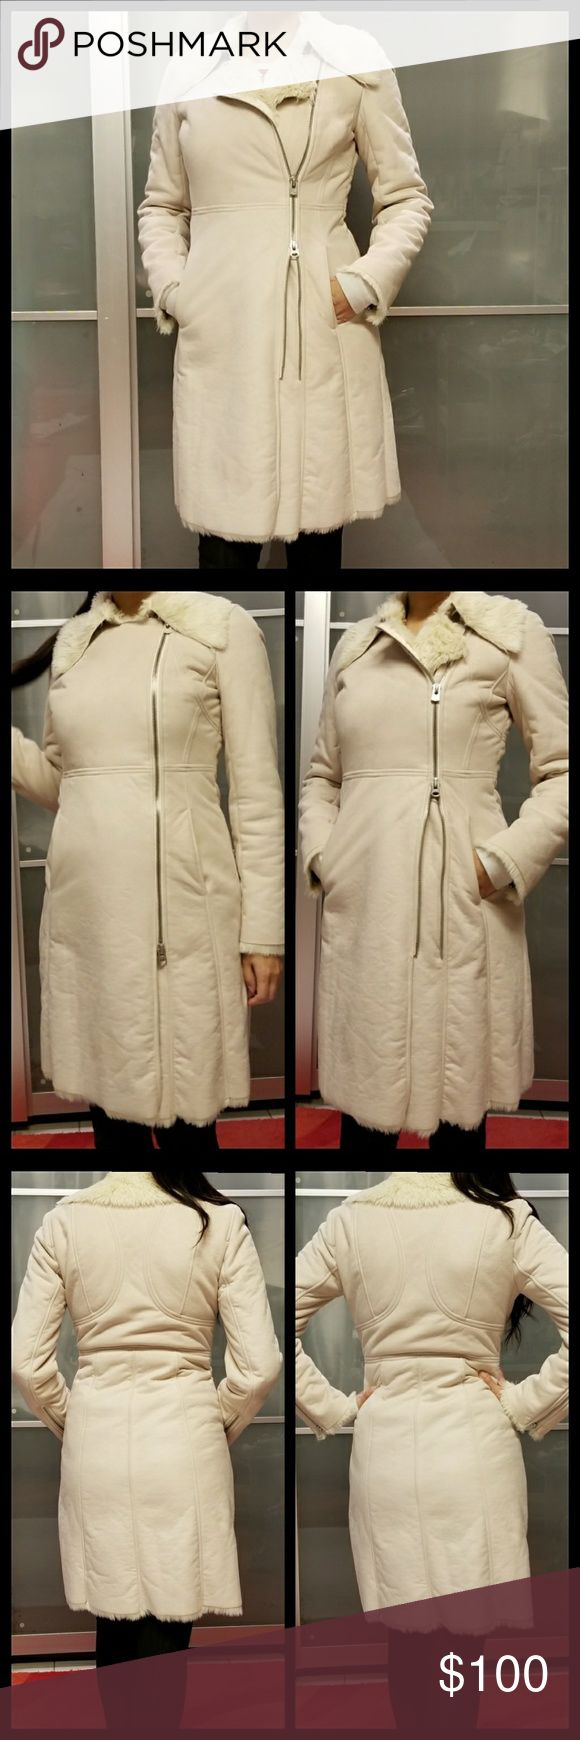 """A/X Armani Exchange Coat Faux fur warm coat Color : cream, beige 📏Flat Measurement : Pit to pit: 18"""" shoulder to hem: 36"""" Model reference 5'6""""  Pre-owned (have flaw inside pockets,  last pic)   Dry clean only Please pictures for detail *No trade A/X Armani Exchange Jackets & Coats"""